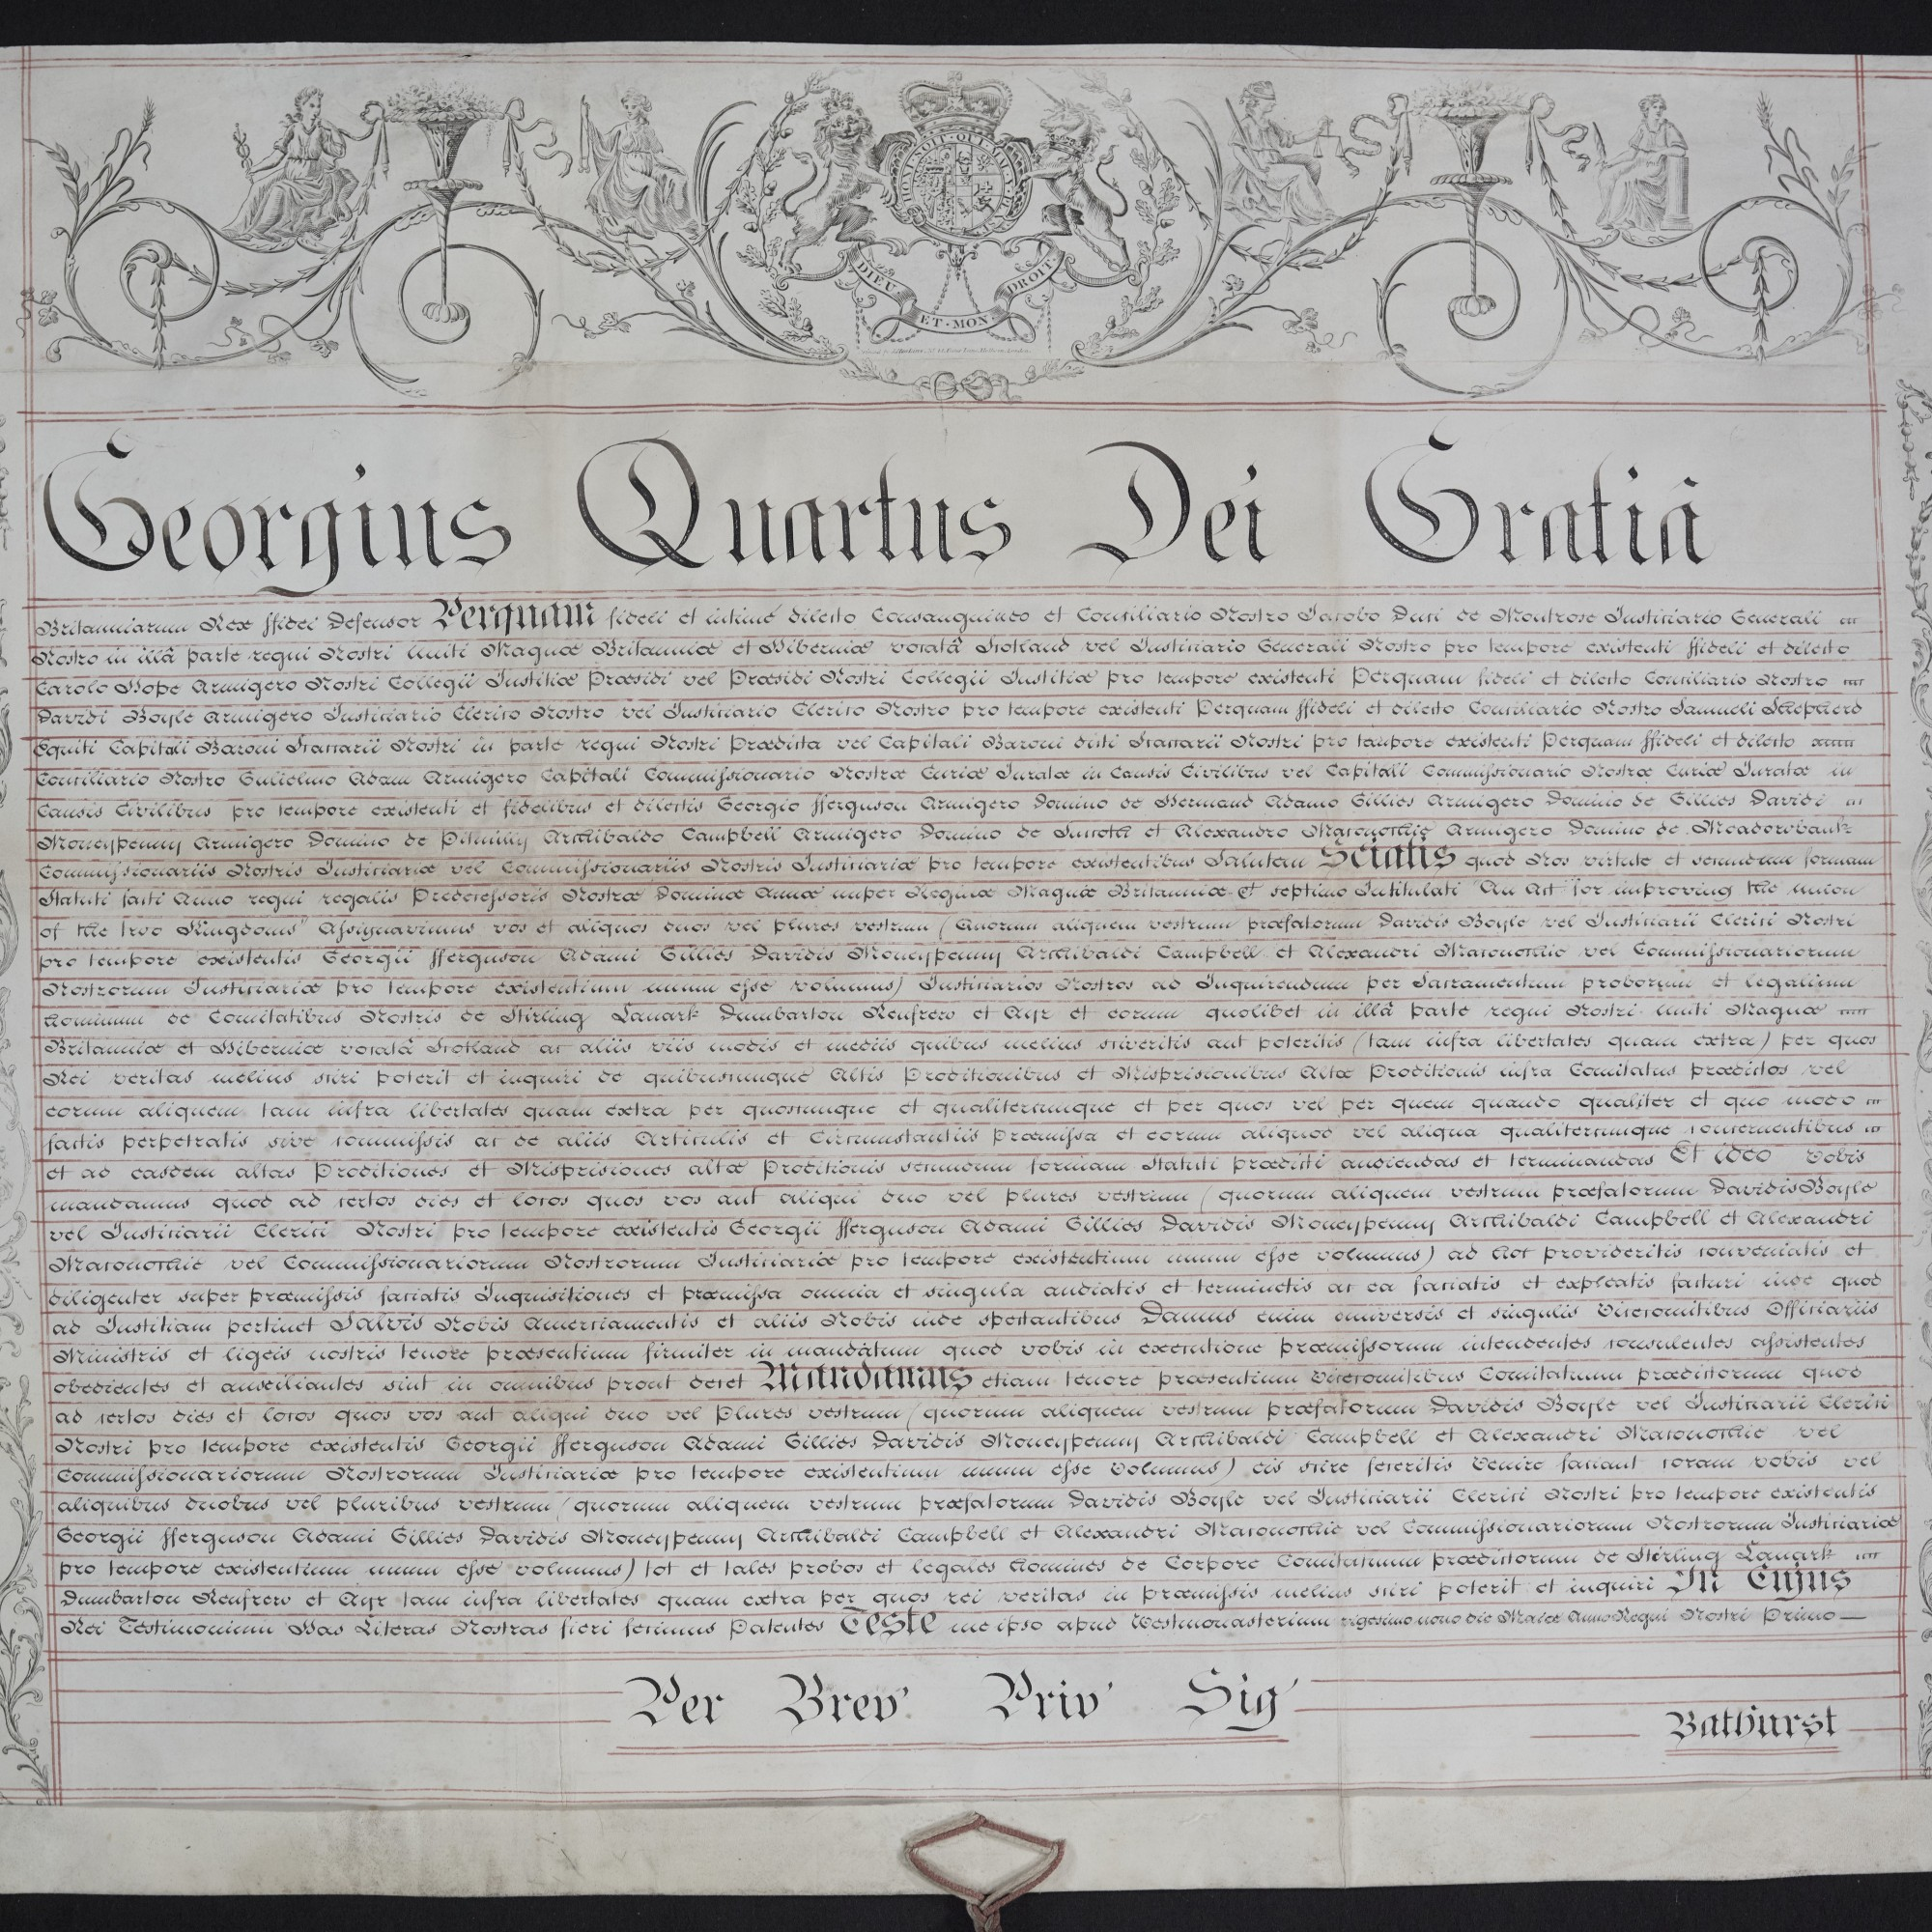 Treason Trials, Commission of Oyer and Terminer, the Latin text. National Records of Scotland, Crown copyright, JC21/1/1